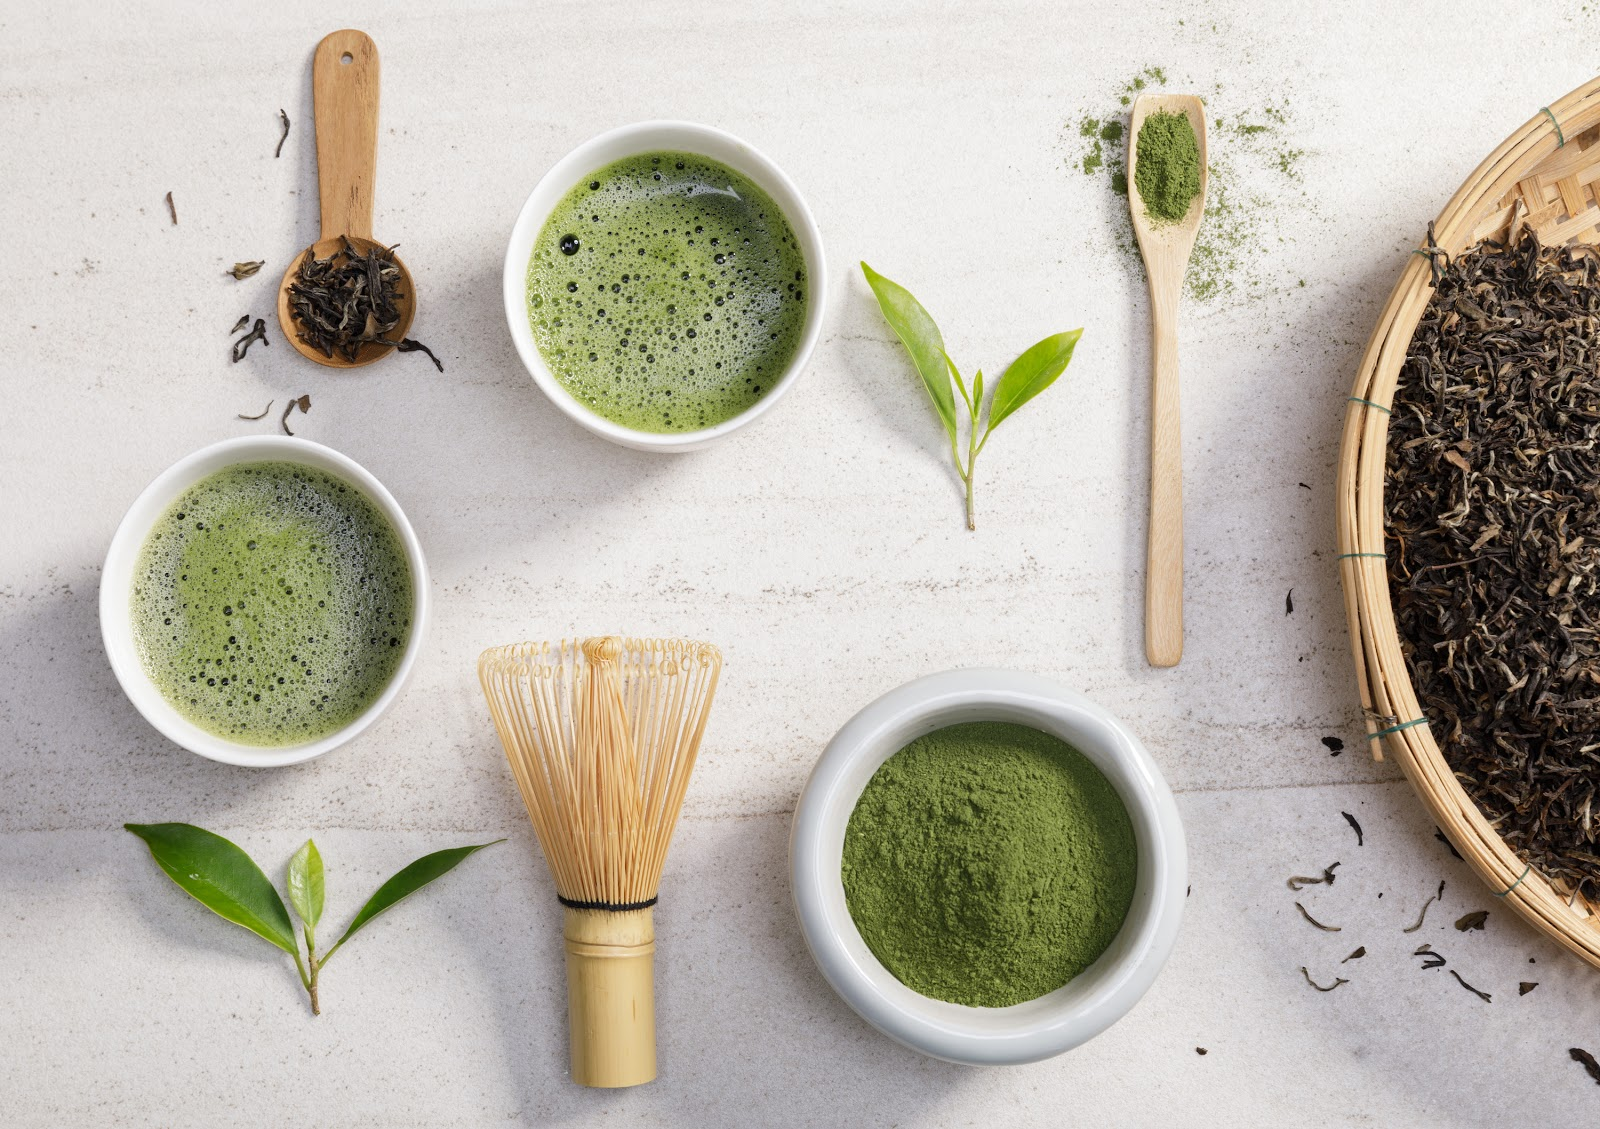 matcha tea and tools